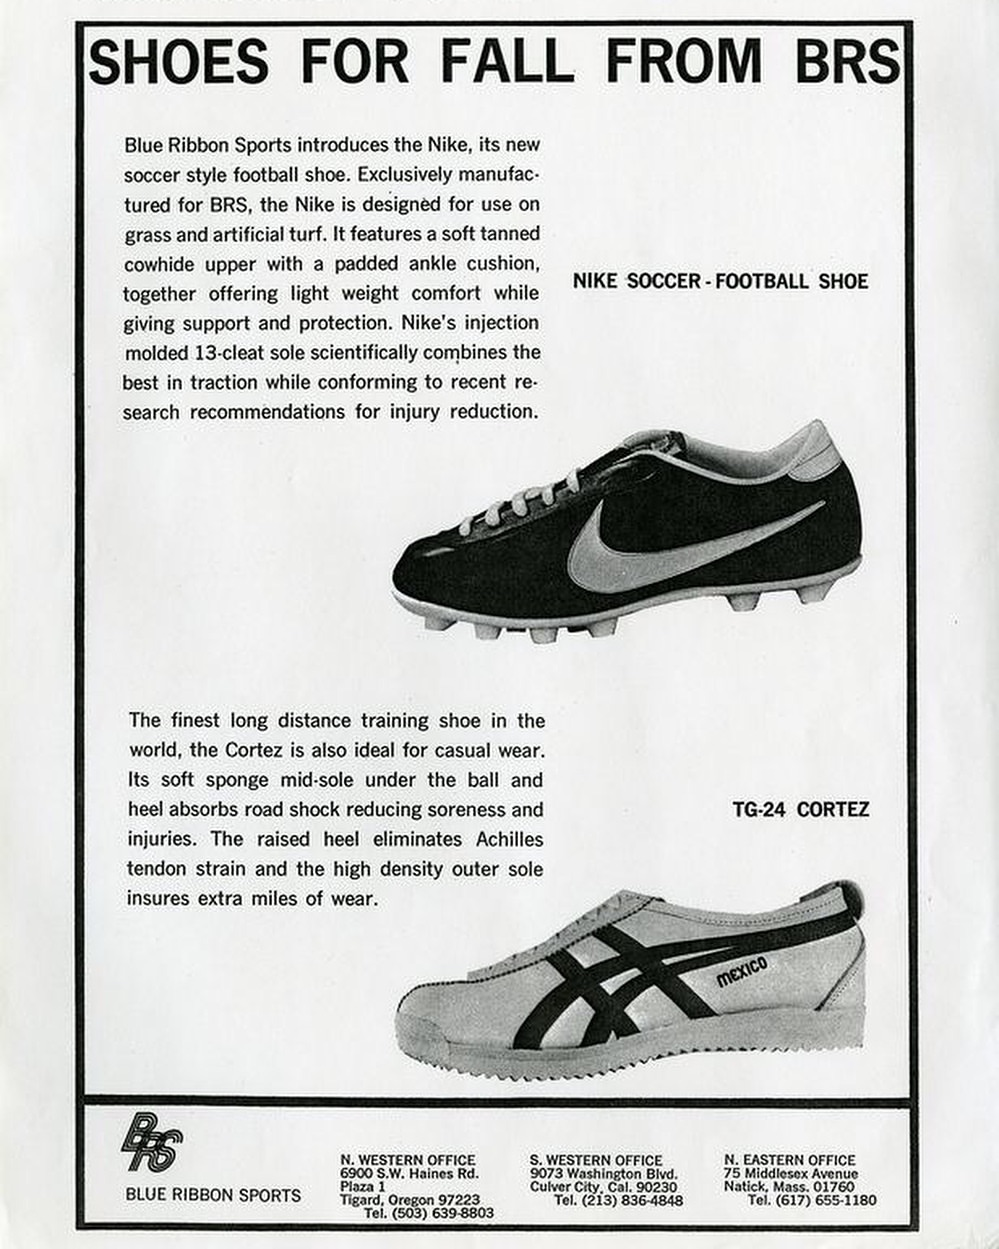 Blue Ribbon Sports - TG-24 Cortez